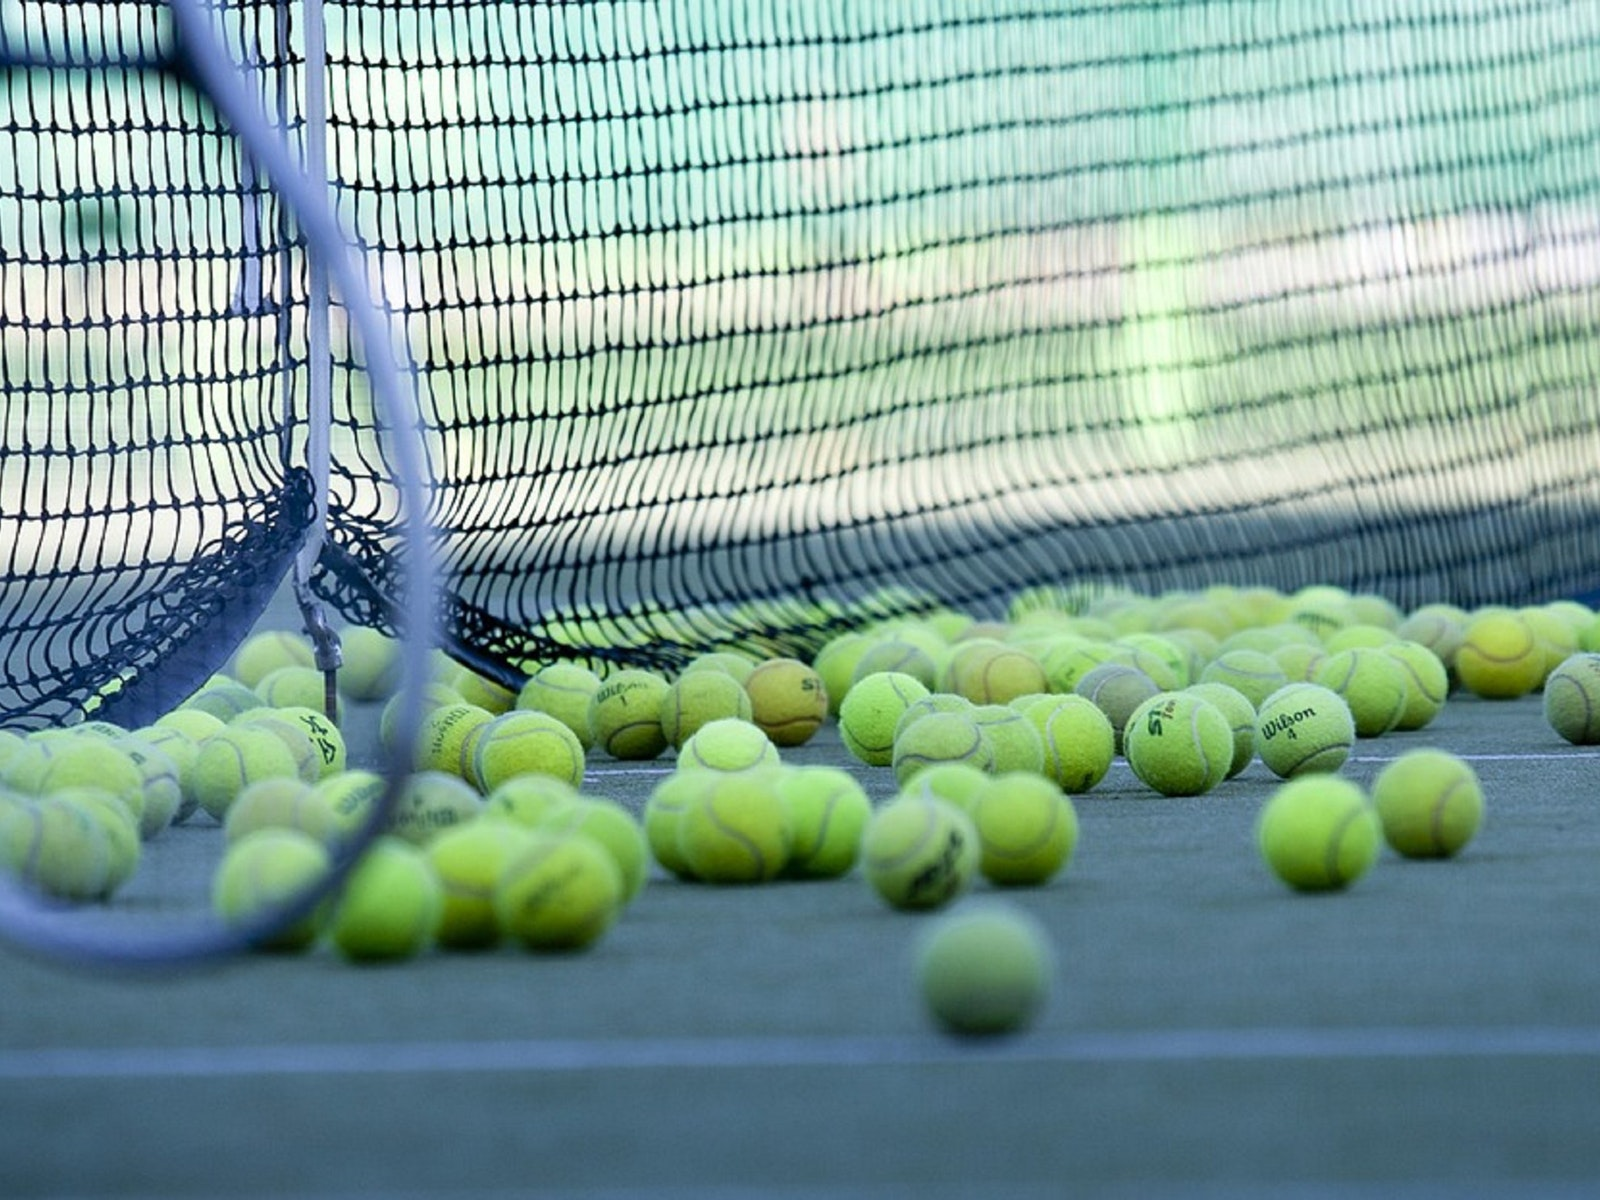 Tennis Balls and Net